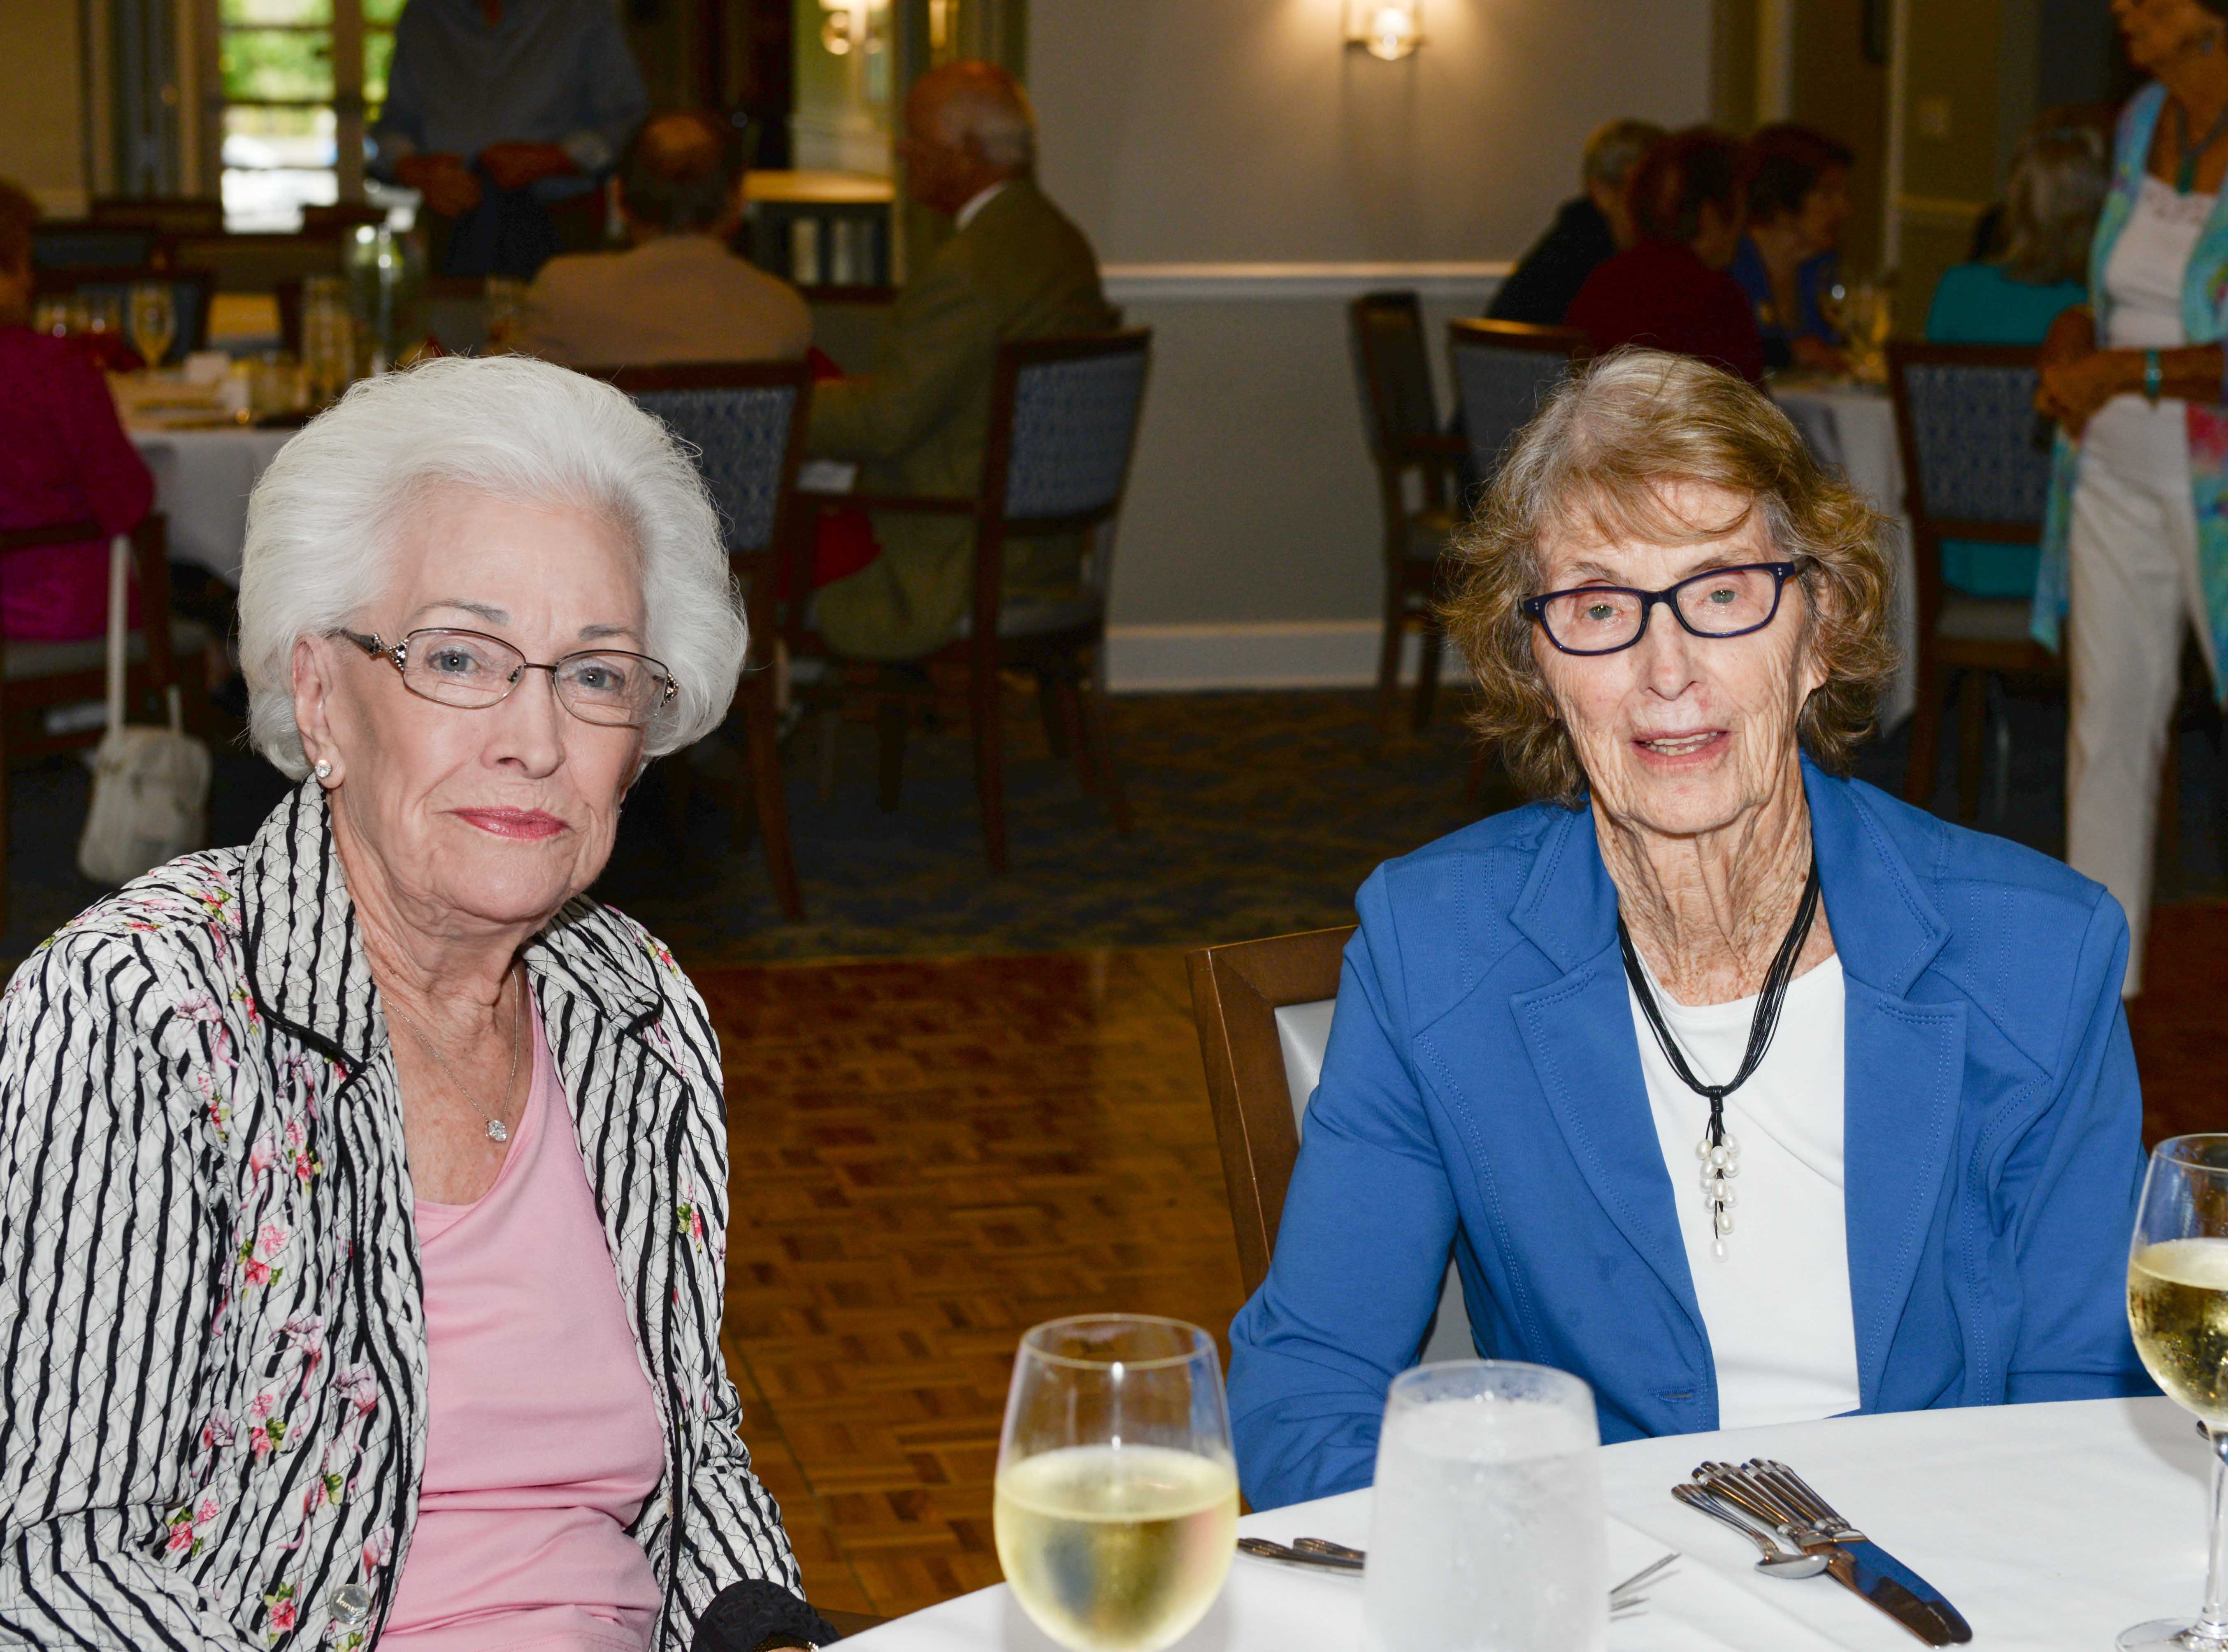 Natalie MacDonald, left, and Gloria Wolfe at the Stuart Friends of the Atlantic Classical Orchestra's Meet the Artist Dinner at the Stuart Yacht & Country Club.